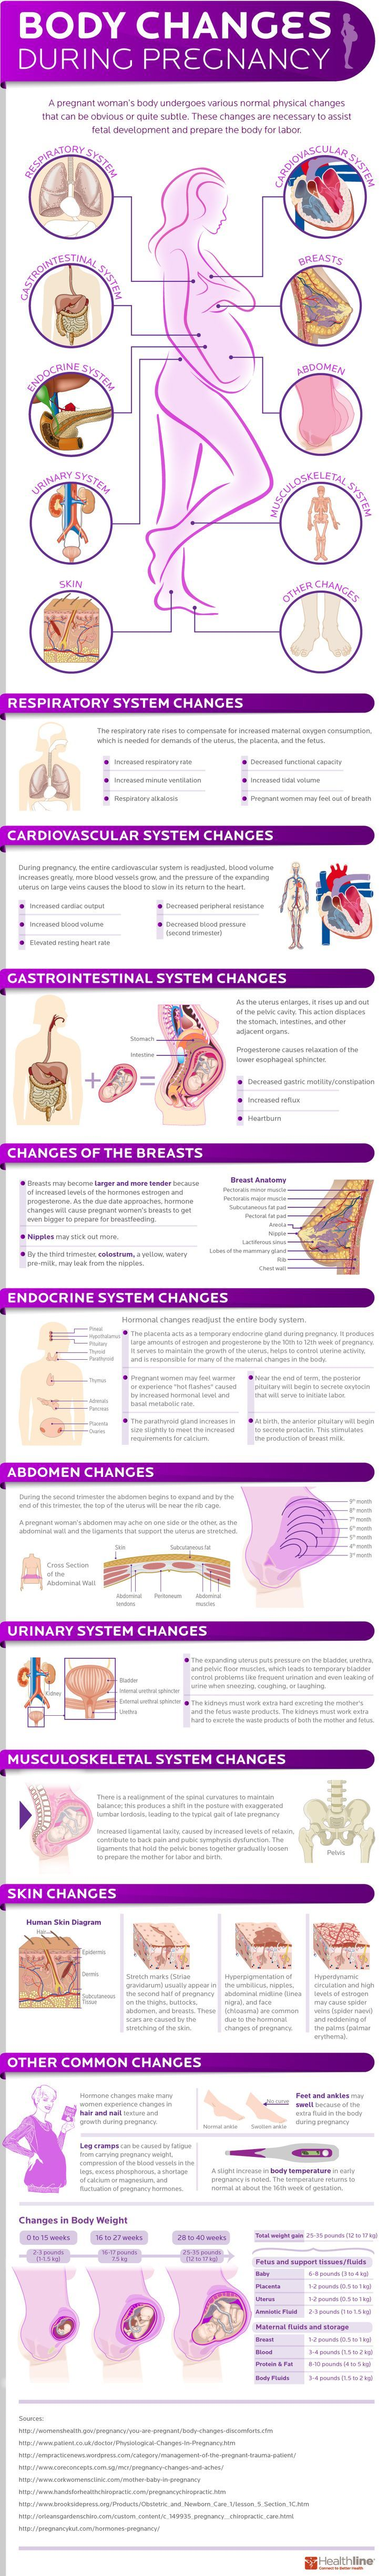 the changes in a womans life during pregnancy Pregnancy changes a woman's brain structure for at least 2  and could help  us understand that epic change in life circumstances in a bit.